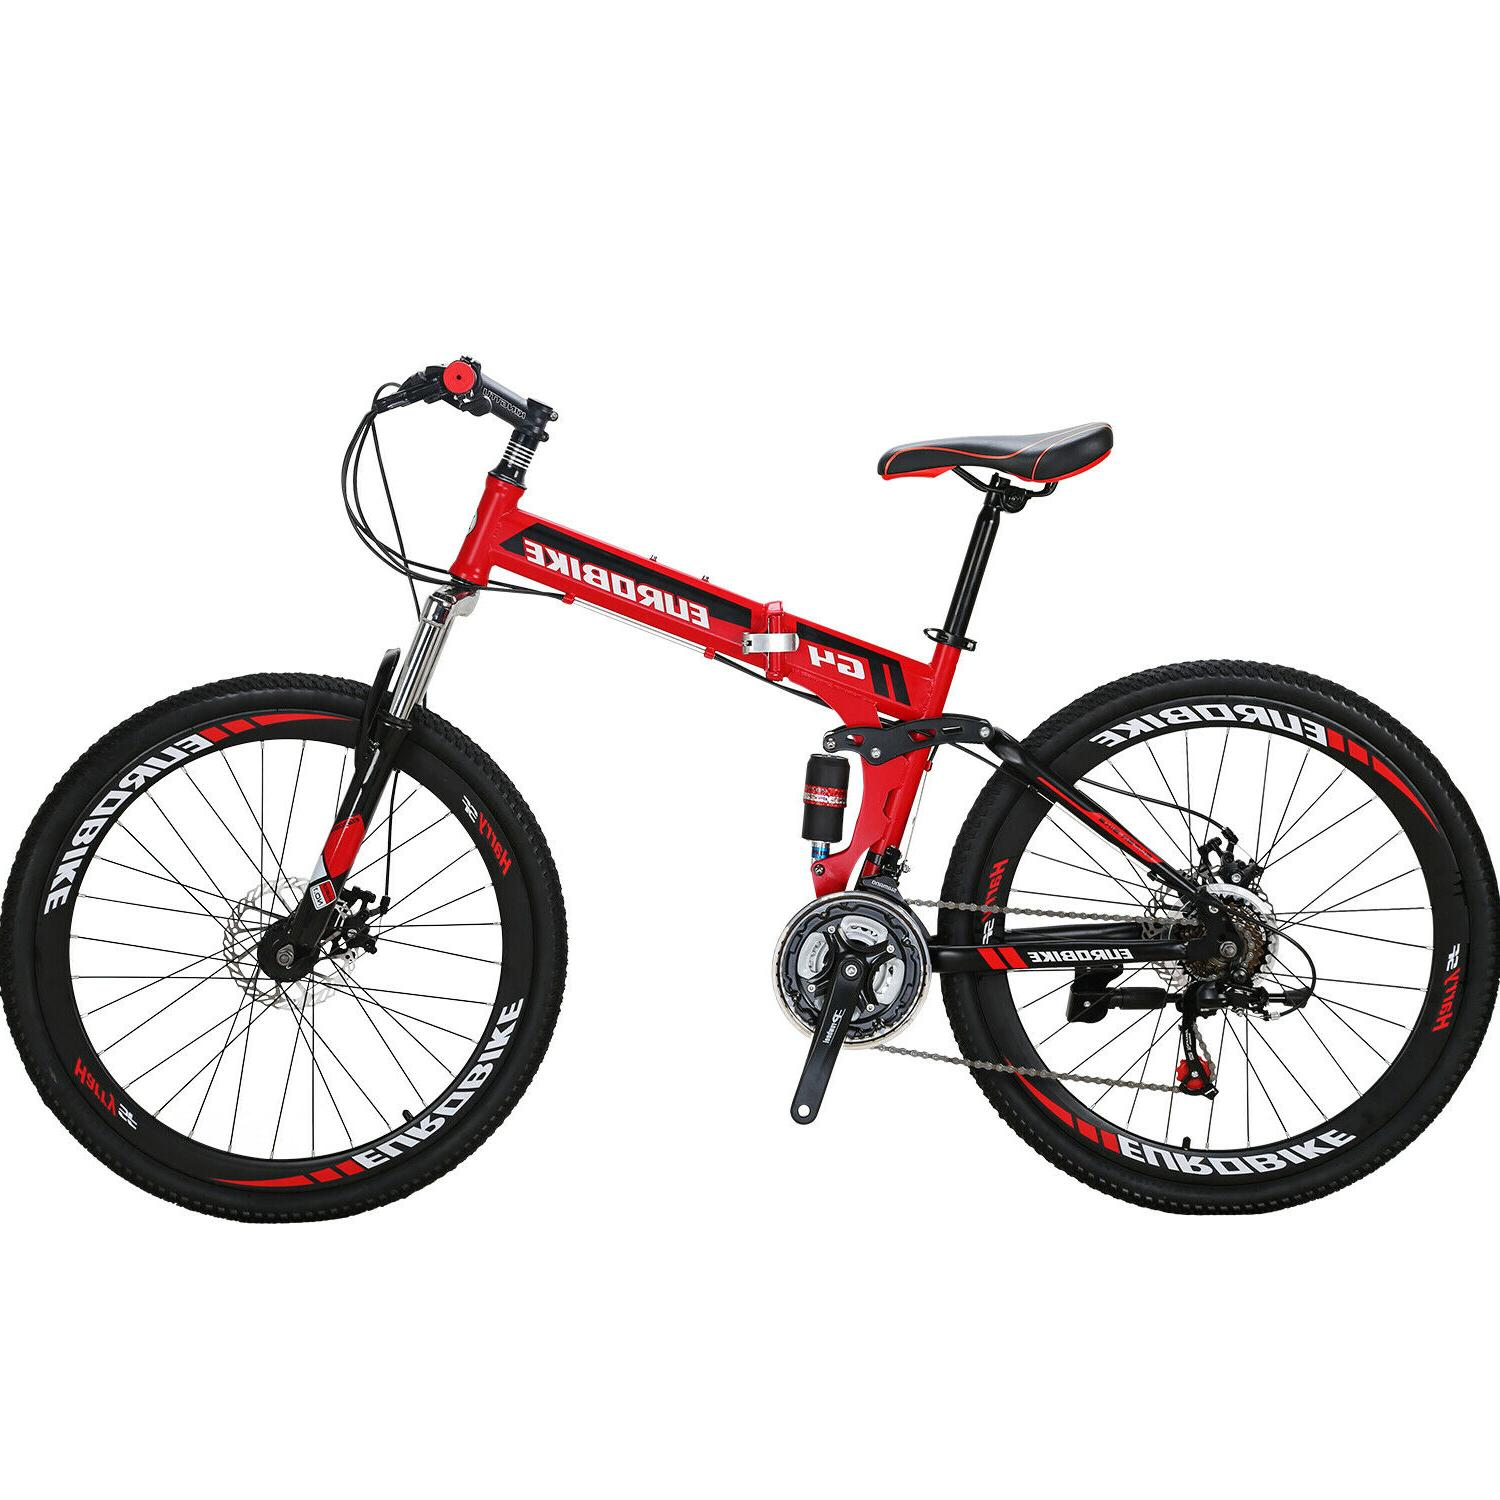 "26"" Mountain Bike 21 Speed Bicycle MTB"